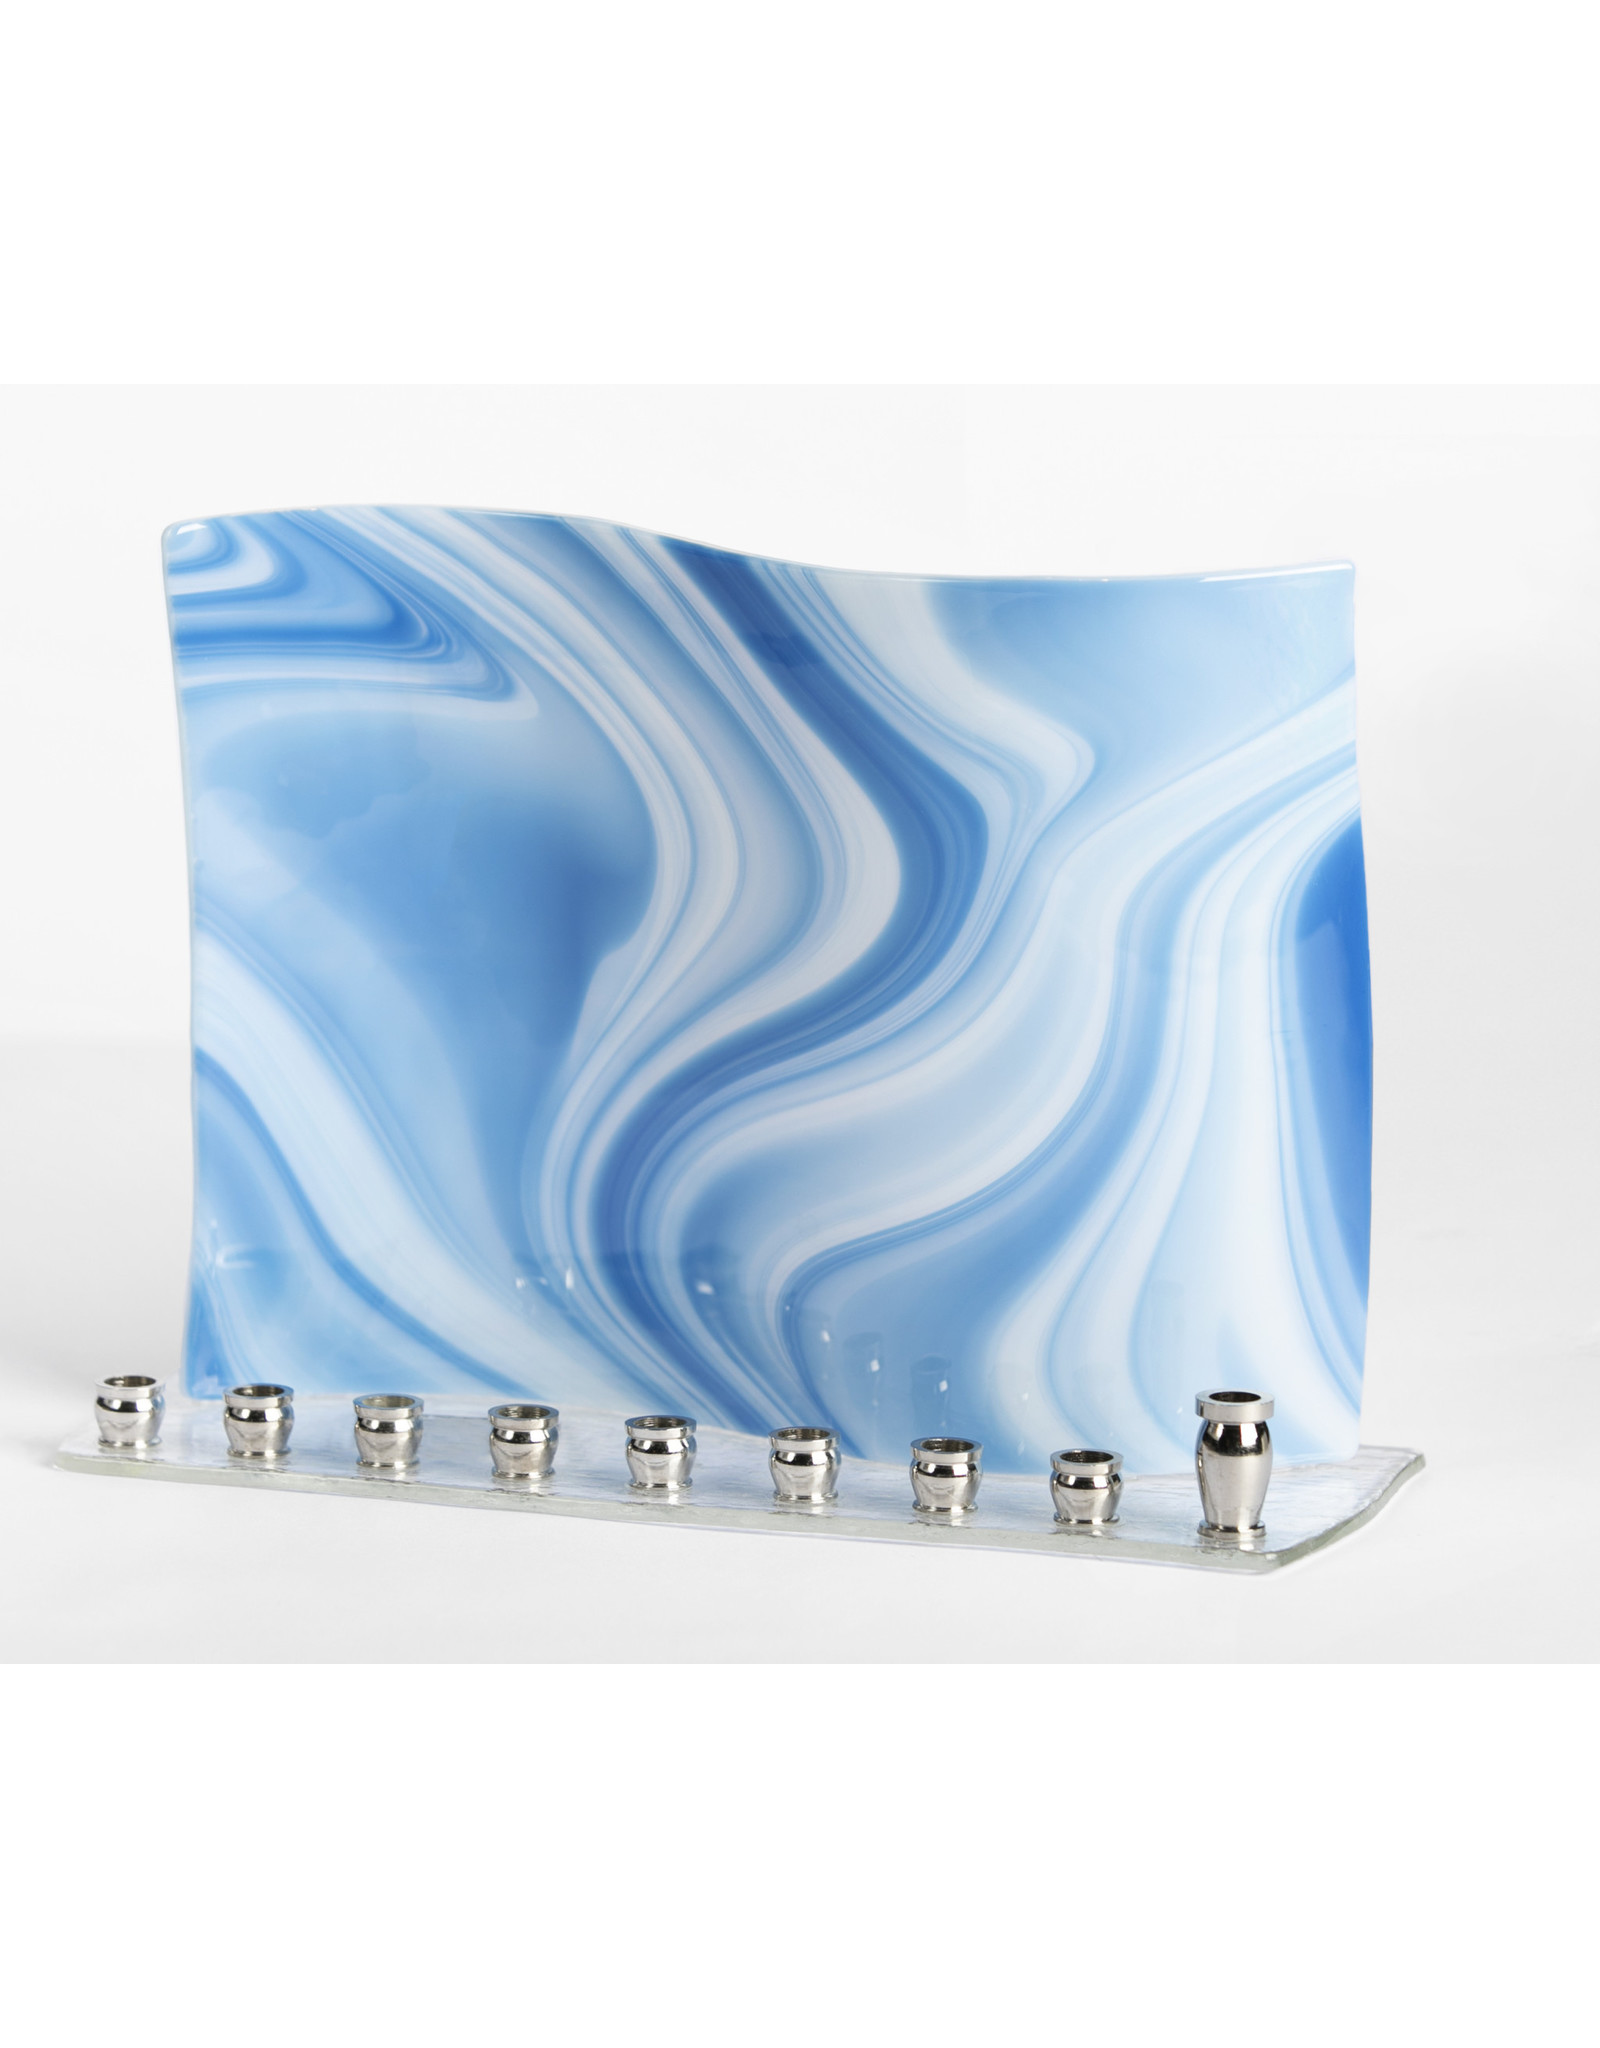 MENORAH BLUE WAVE STAINED GLASS